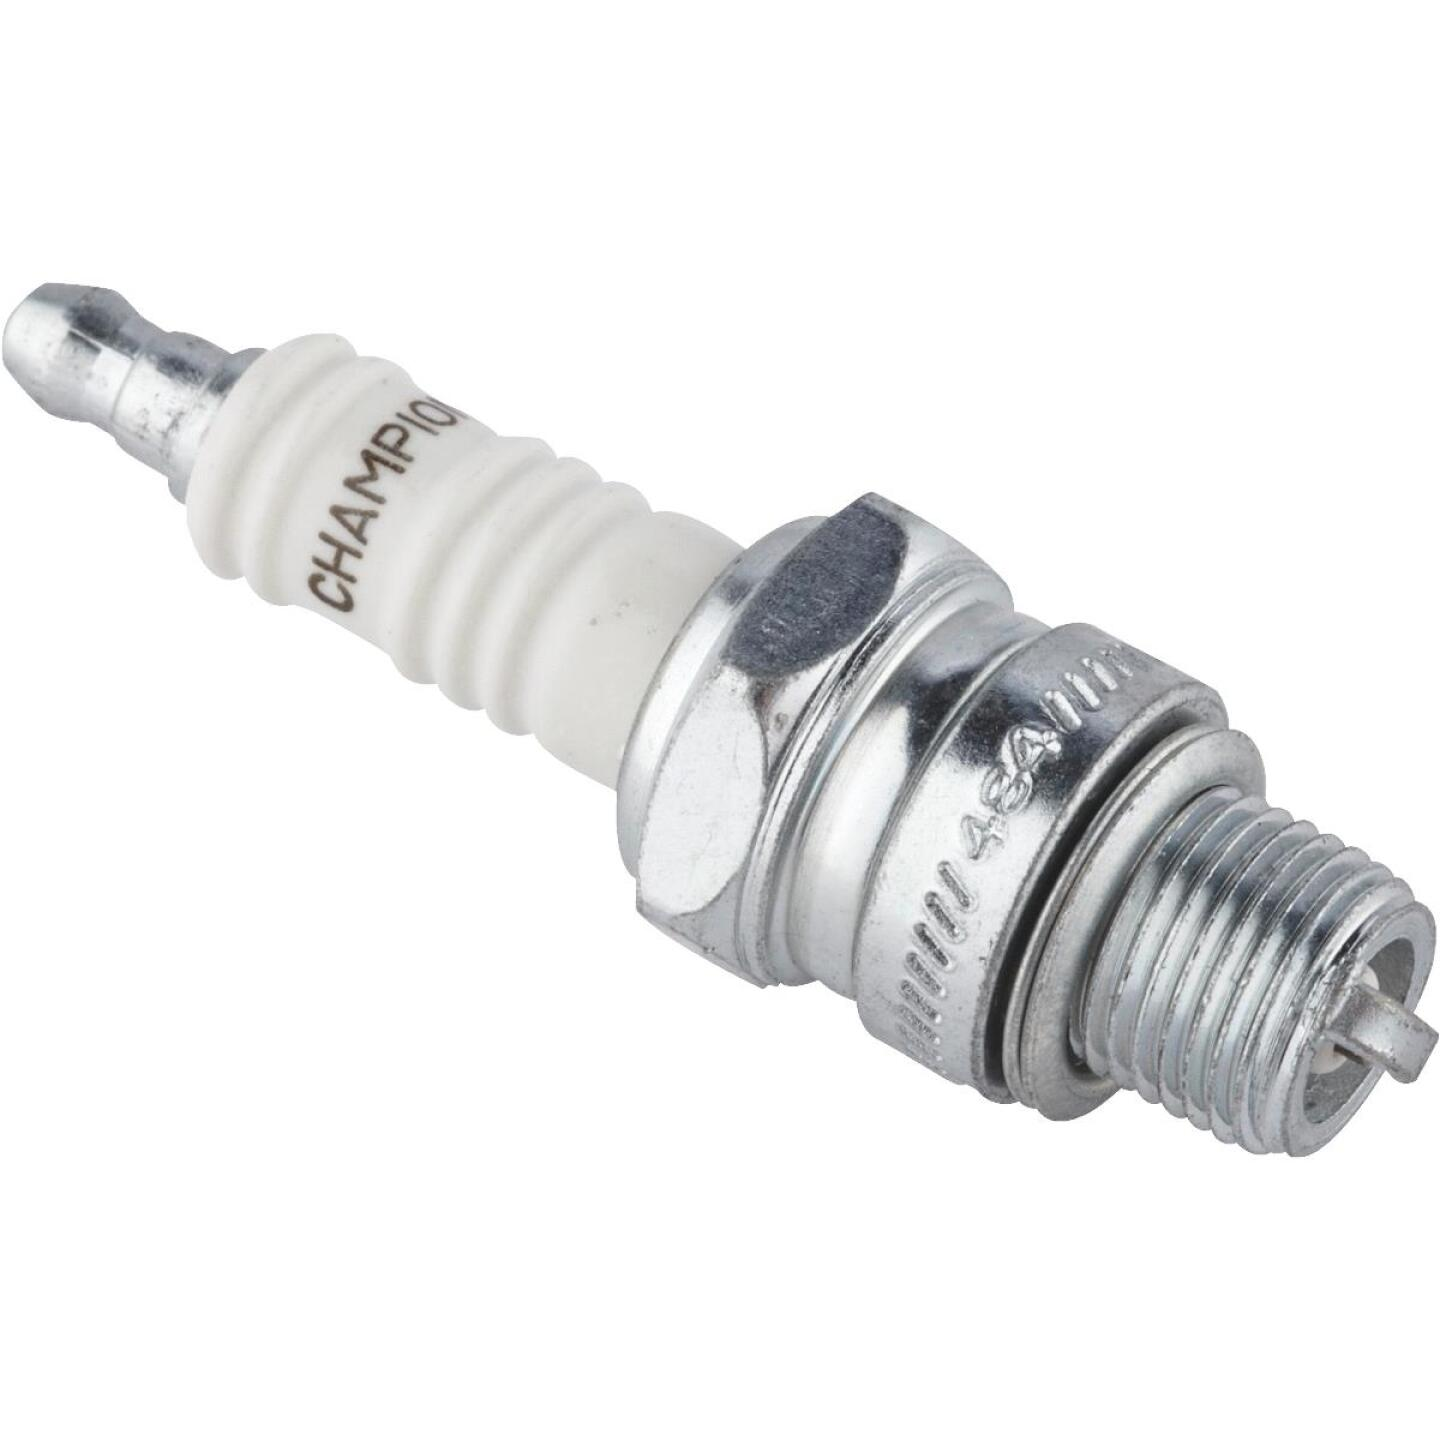 Champion L77JC4 Copper Plus Marine Spark Plug Image 1